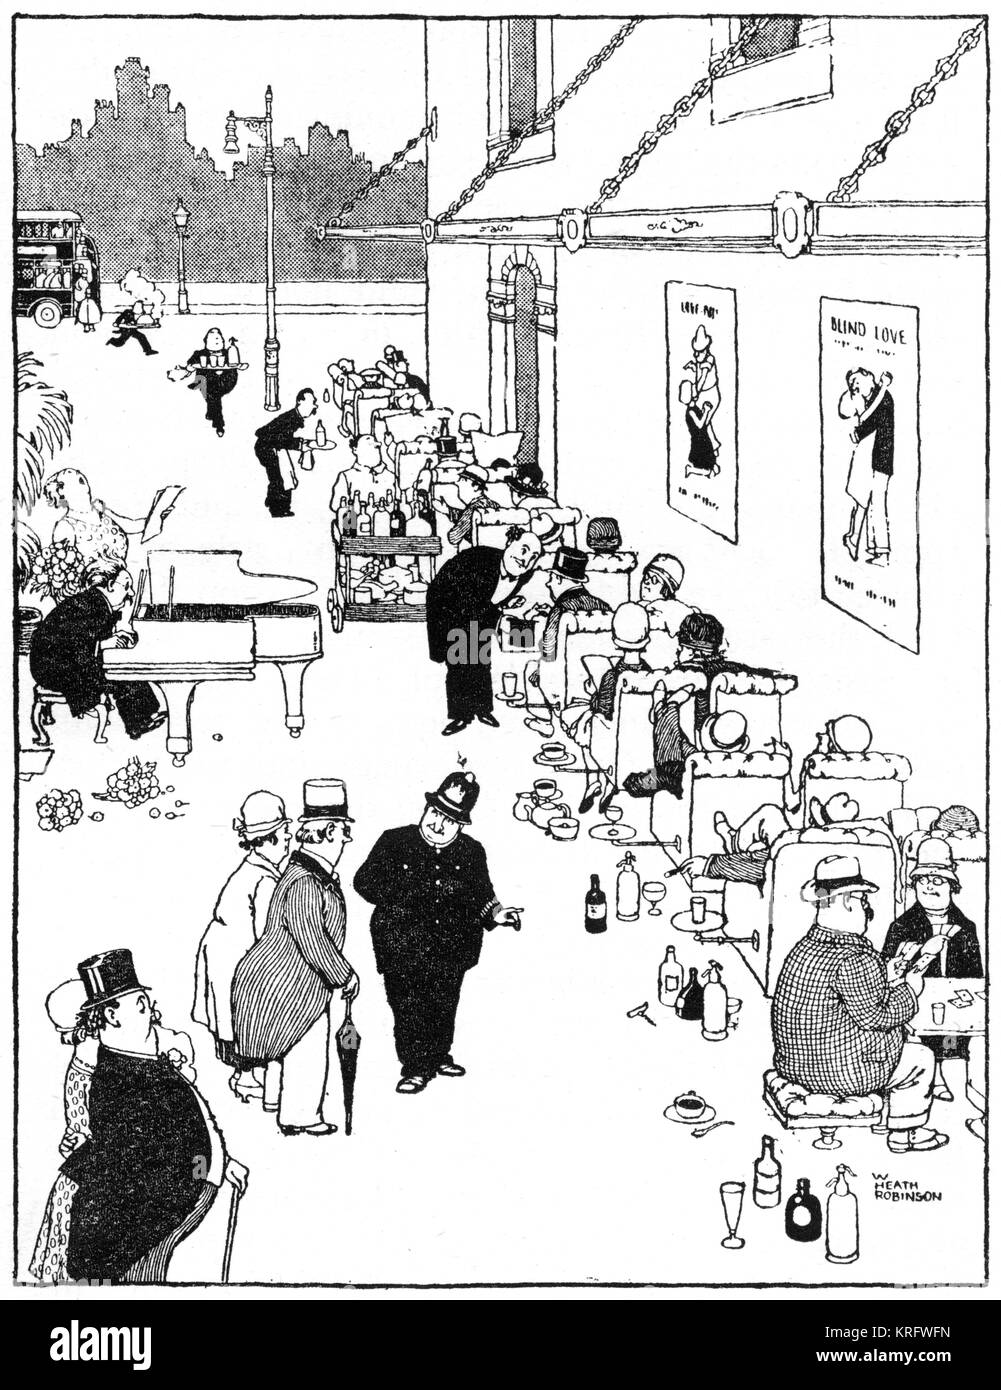 Queue de Luxe (Luxury Queue), with upper class people waiting for a bus, illustration by William Heath Robinson. - Stock Image